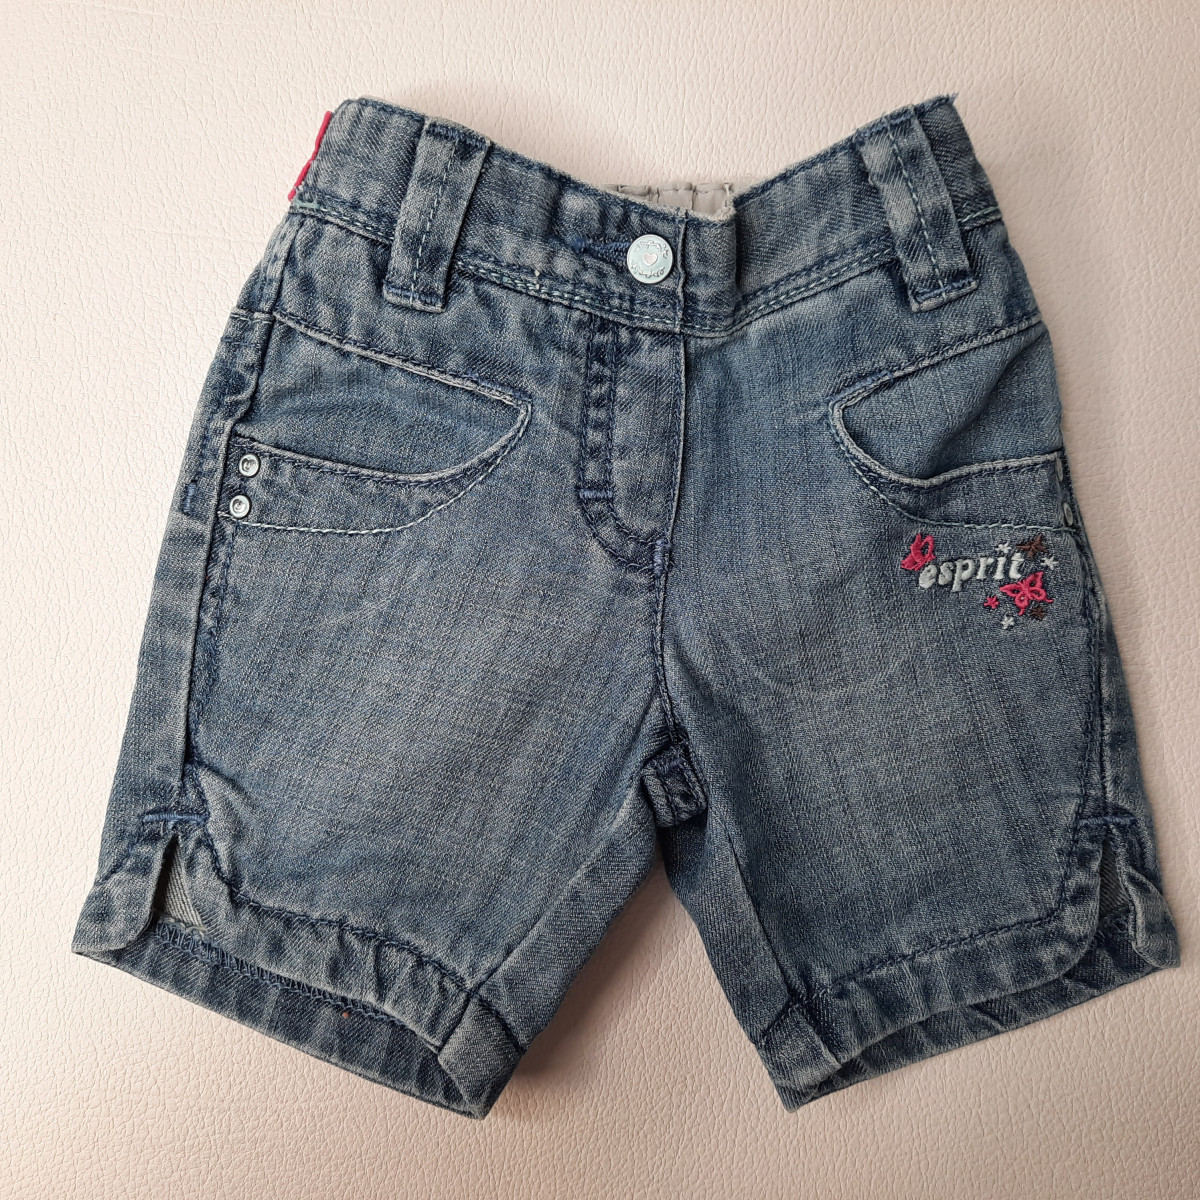 Shorts, Bermudas - photo 13